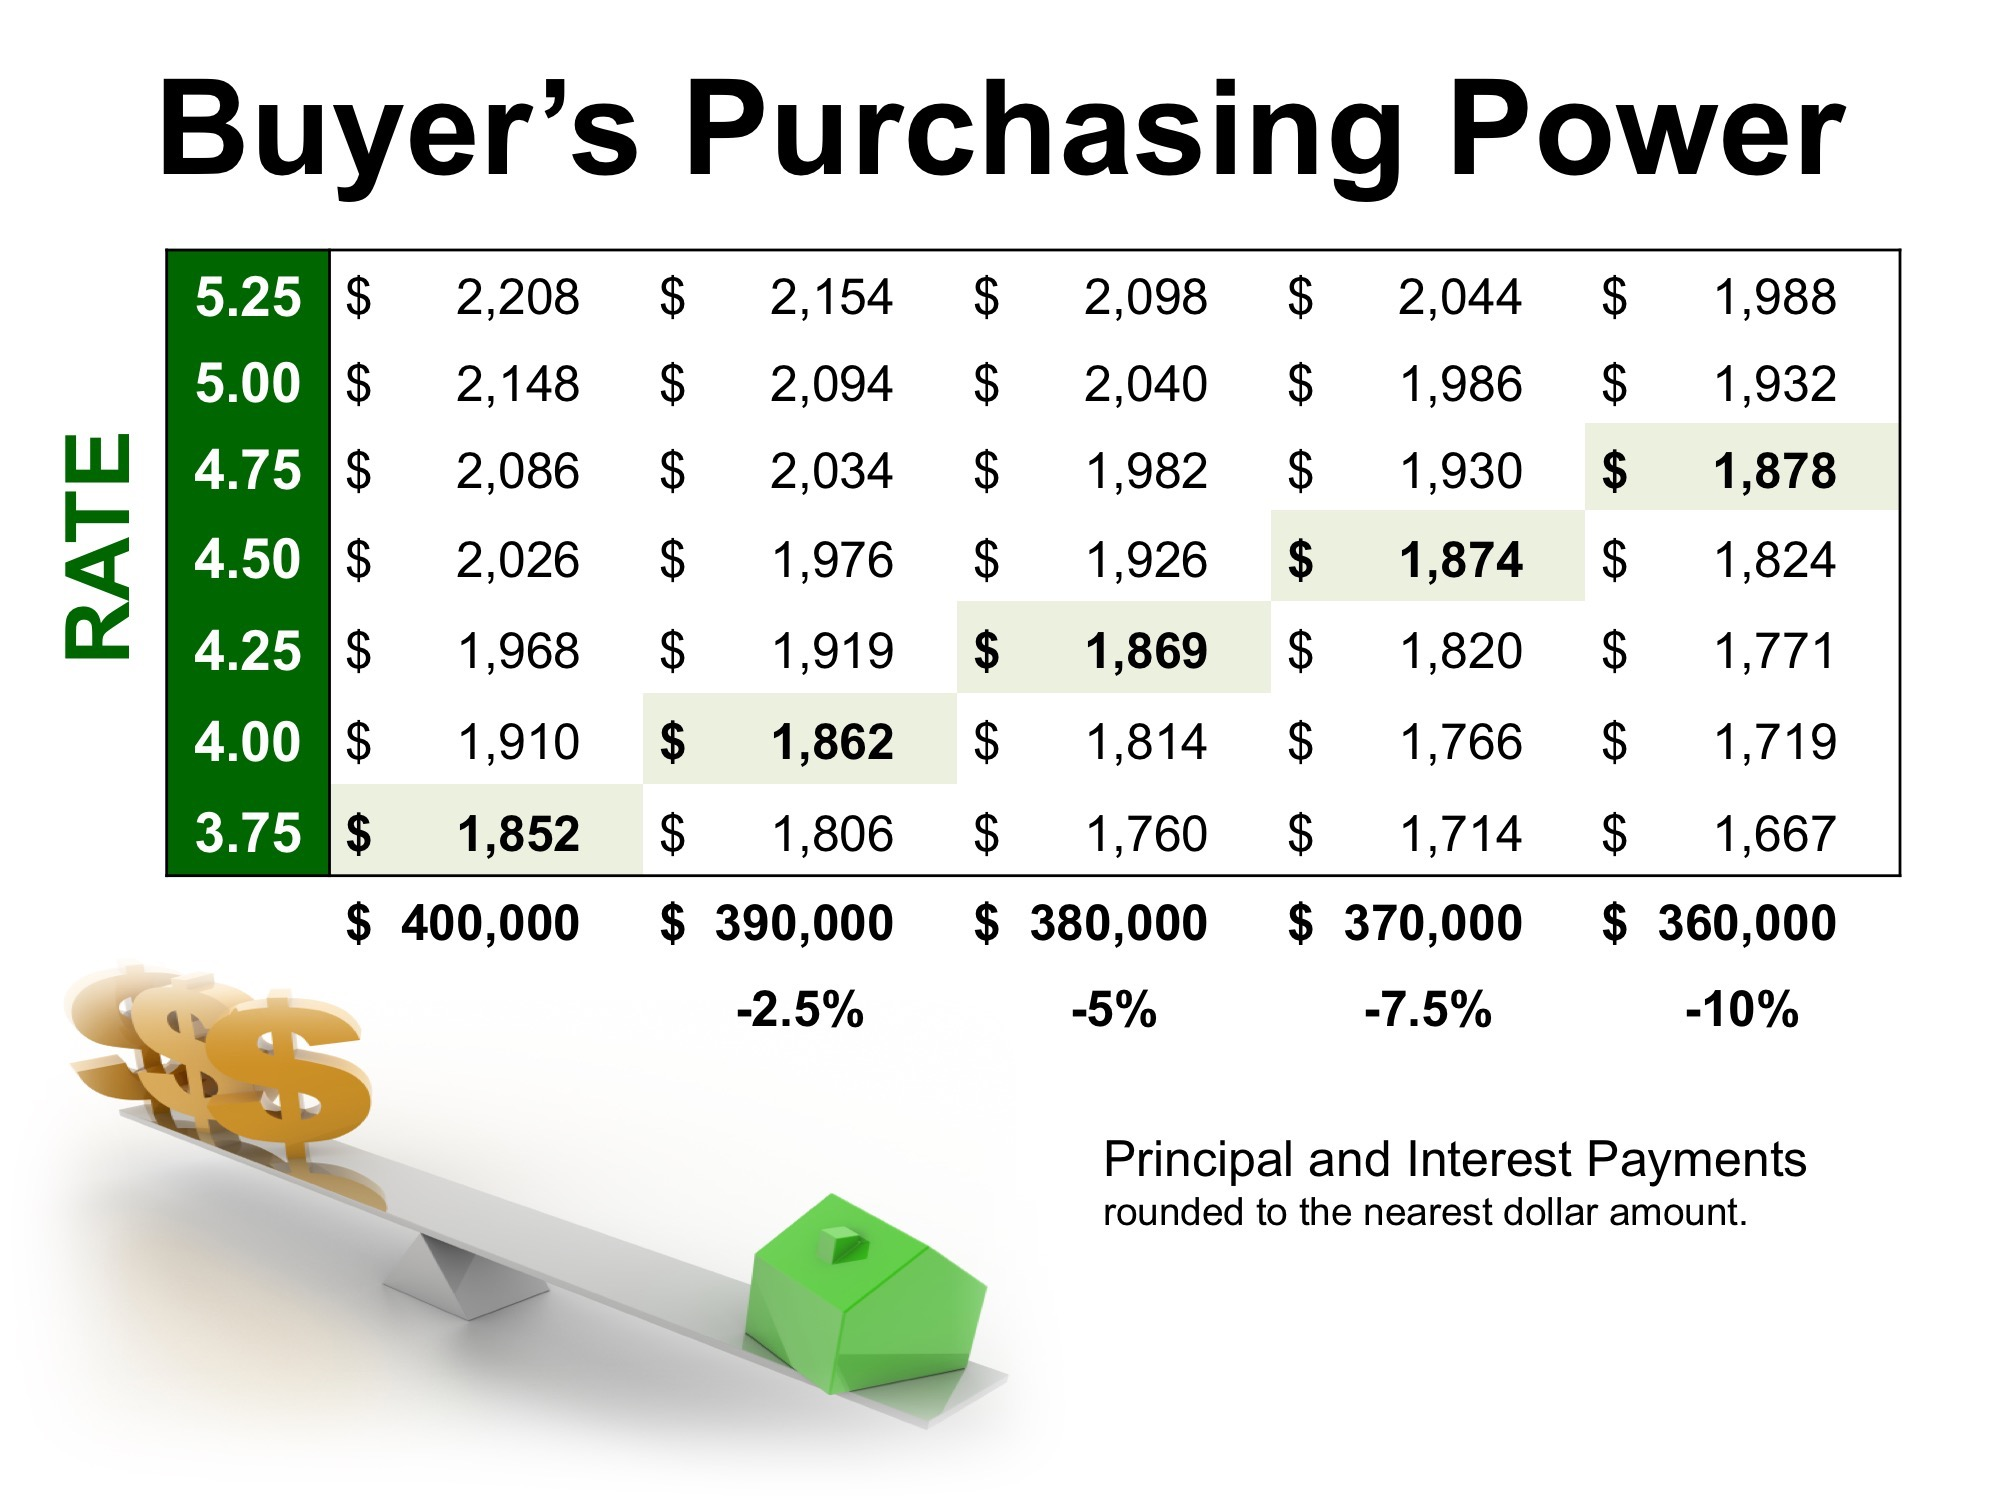 Low Interest Rates Have a High Impact on Your Purchasing Power | Bridge Builders